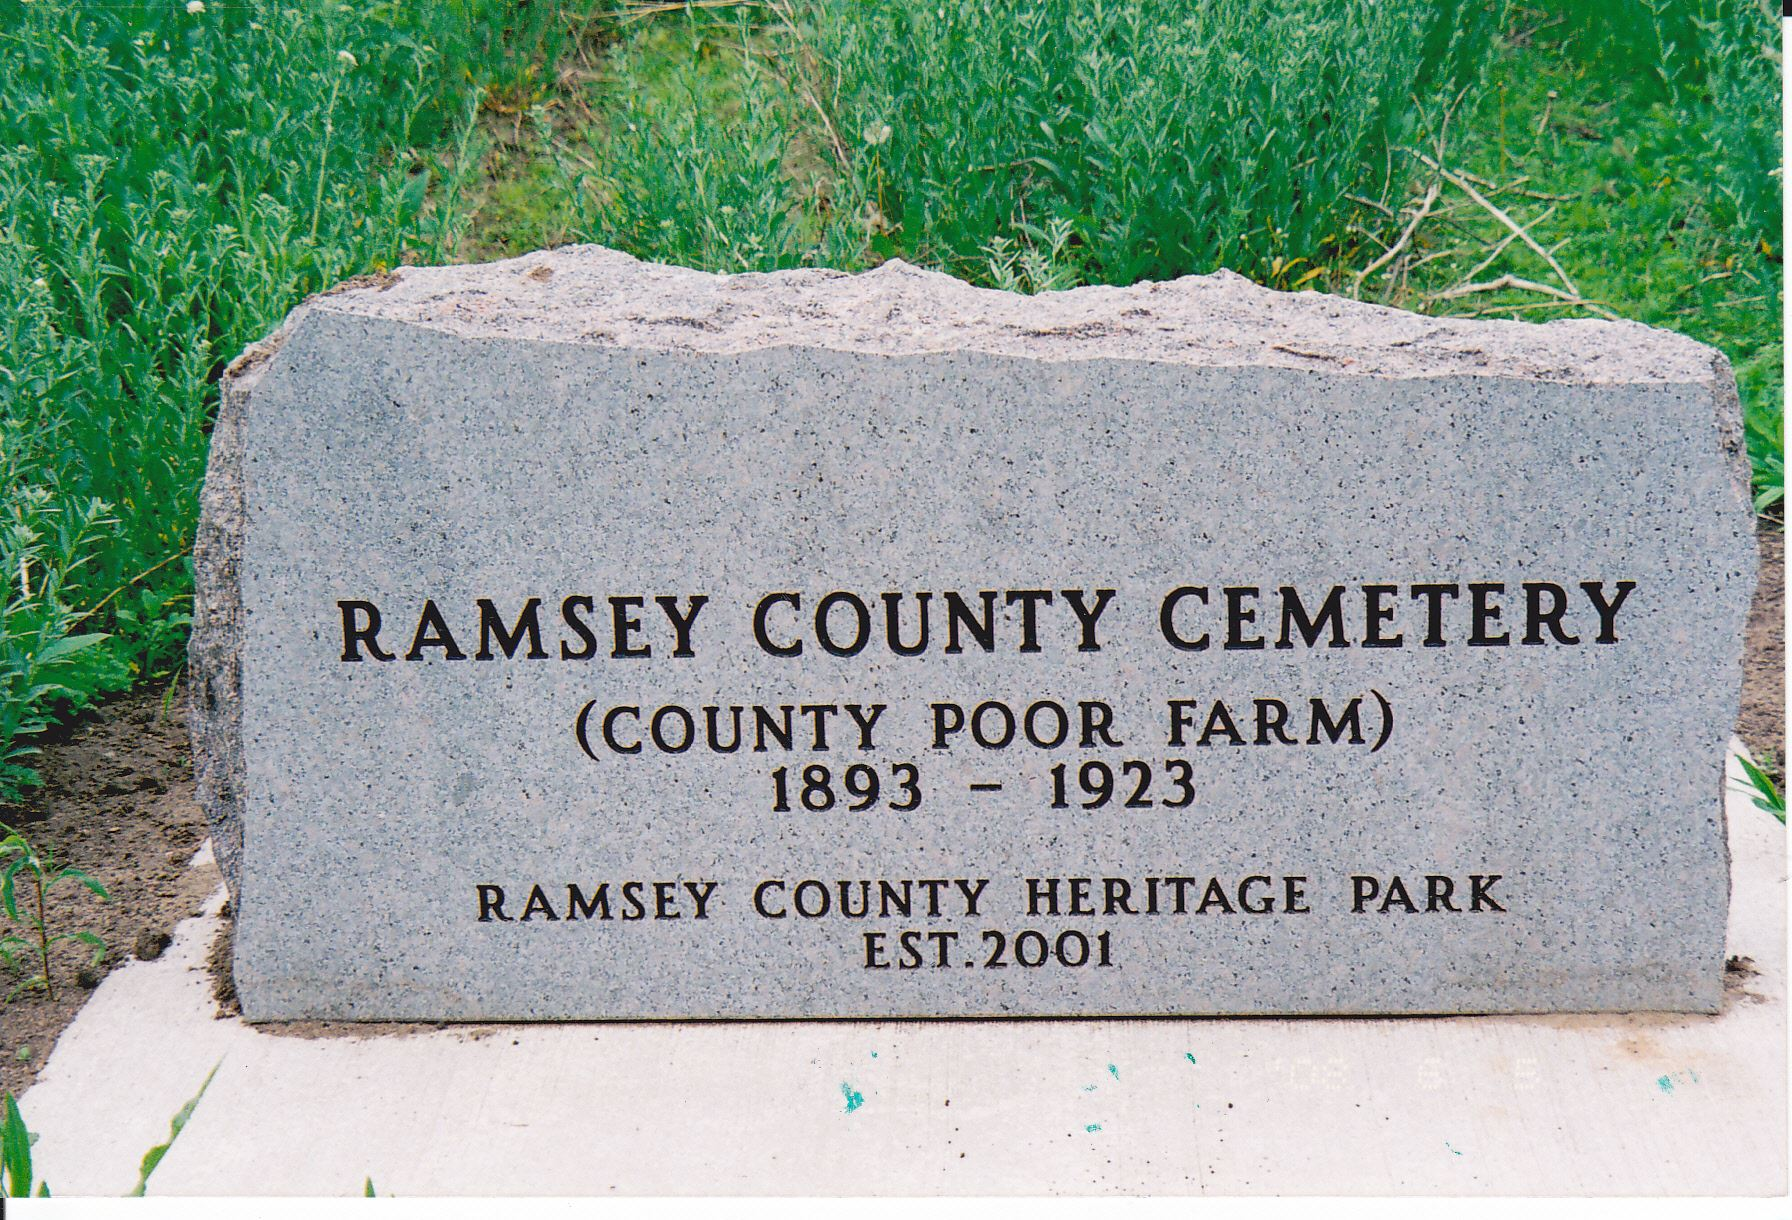 Ramsey County Cemetery (County Poor Farm) 1893 to 1923 Ramsey County Heritage Park Established 2001